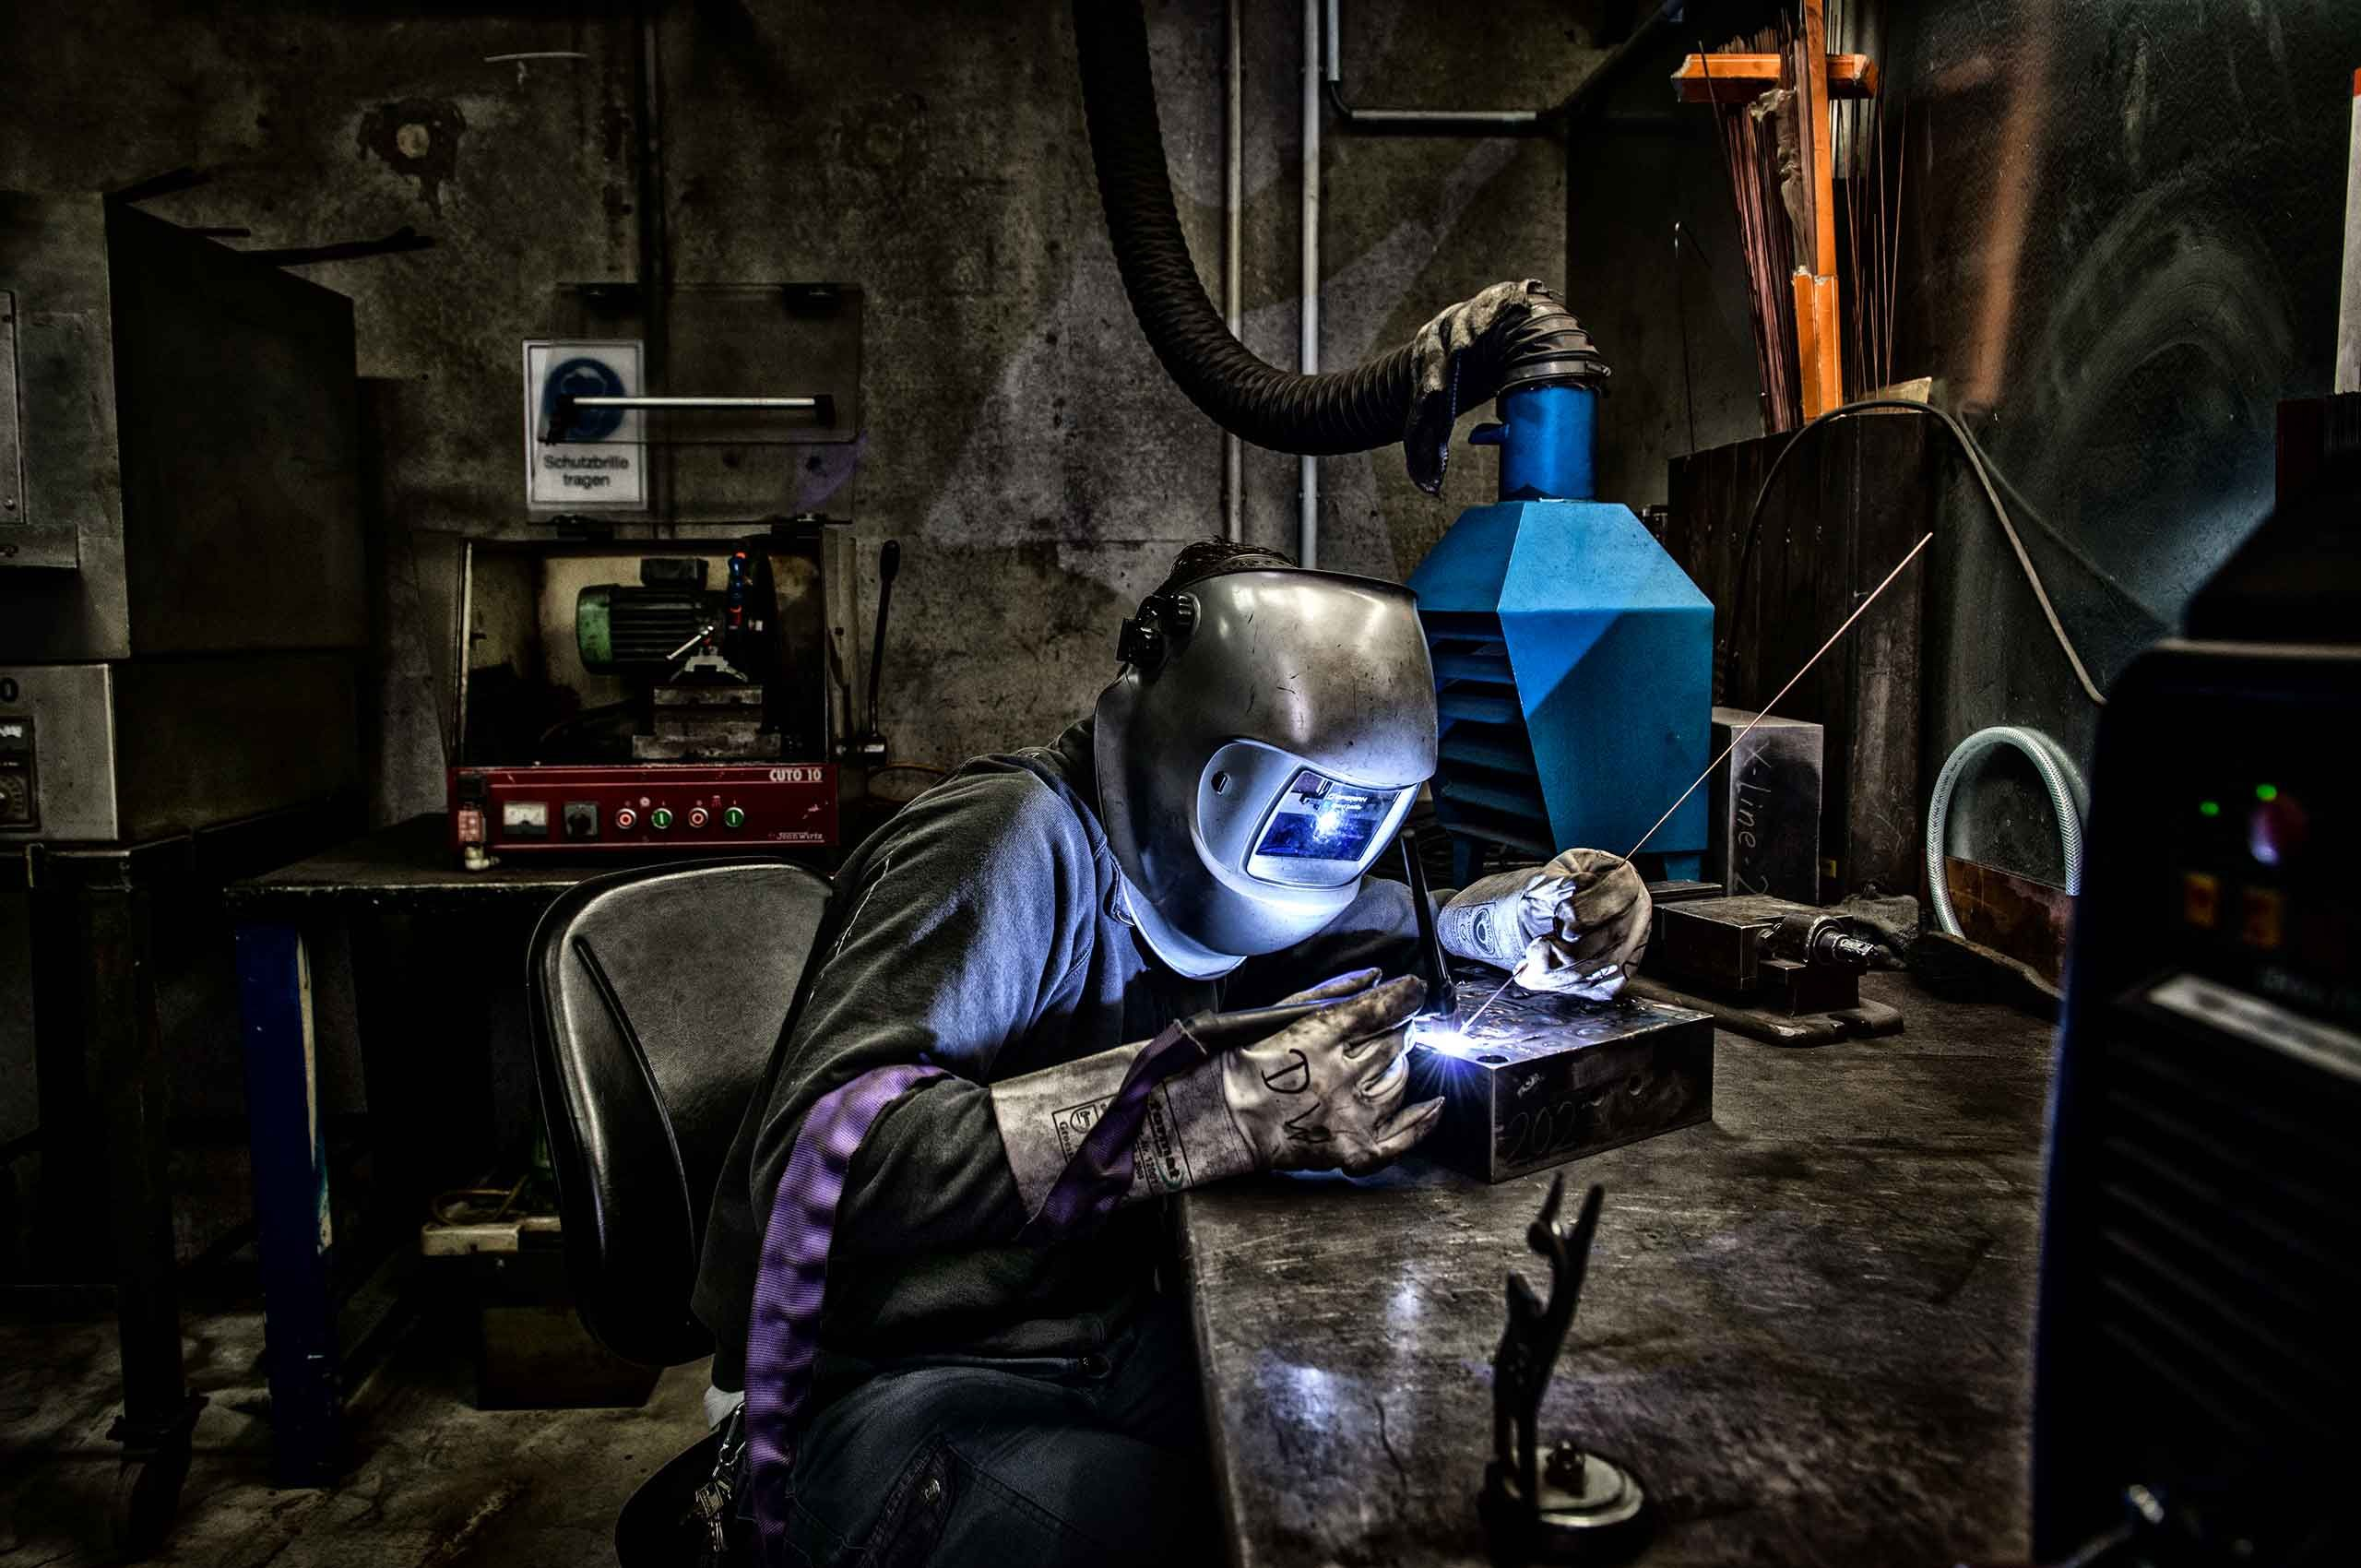 welding-wustof-factory-solingen-germany-by-HenrikOlundPhotography.jpg